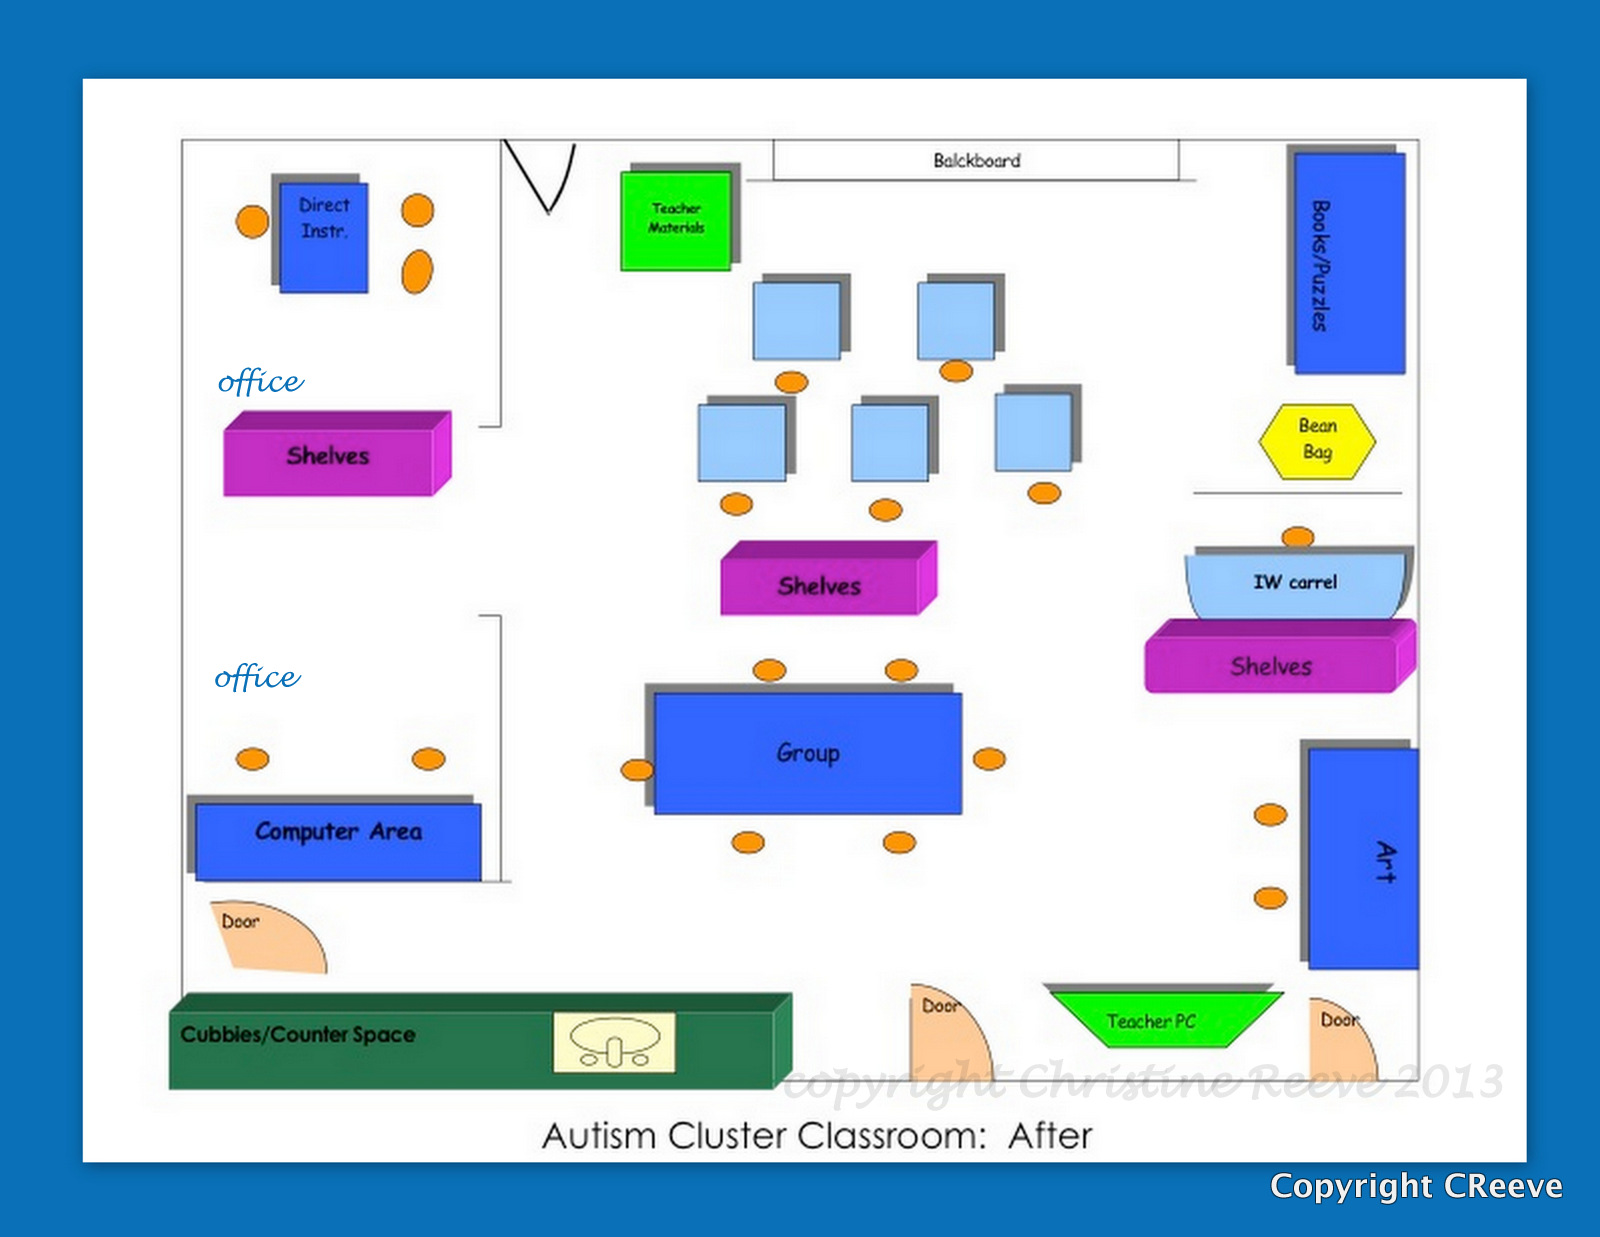 Classroom Design For Disabled Students : Back to school setting up classrooms for students with